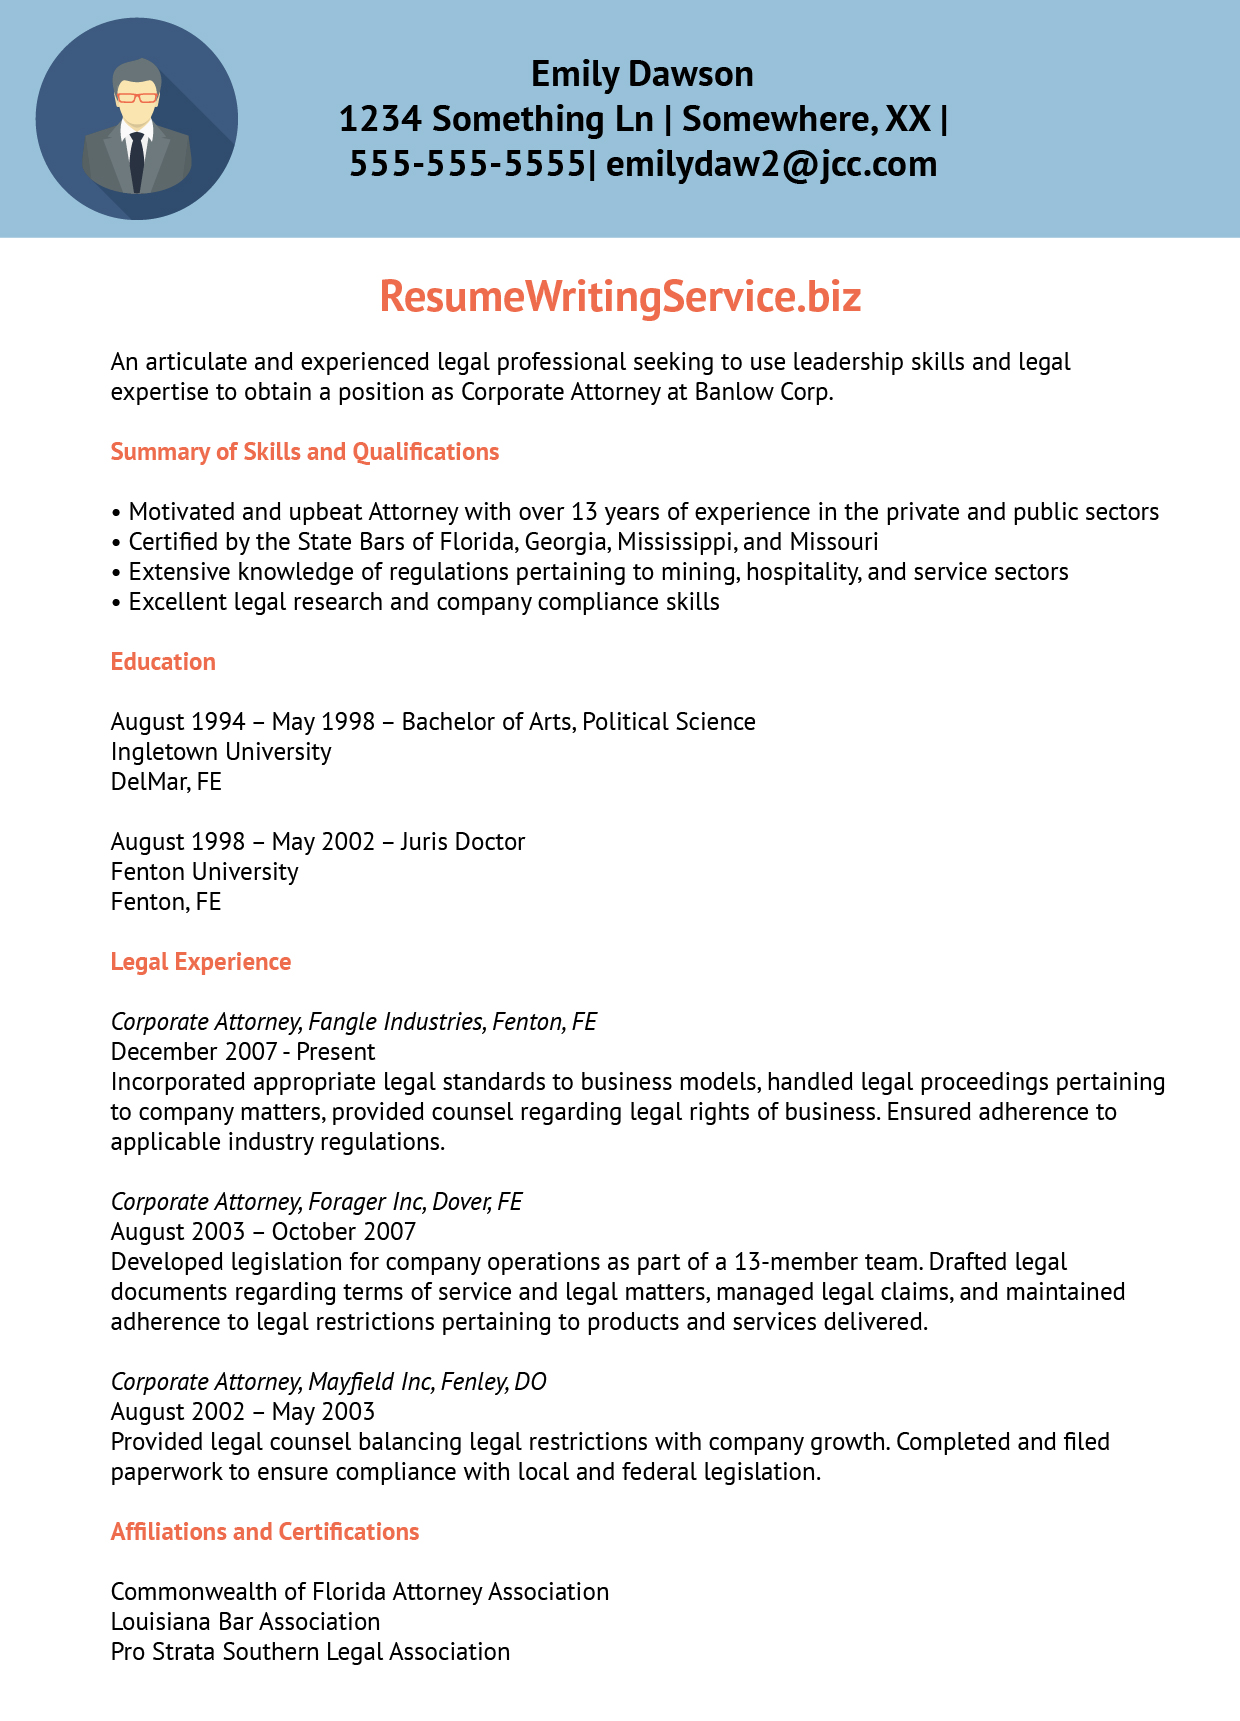 Best professional resume writing service